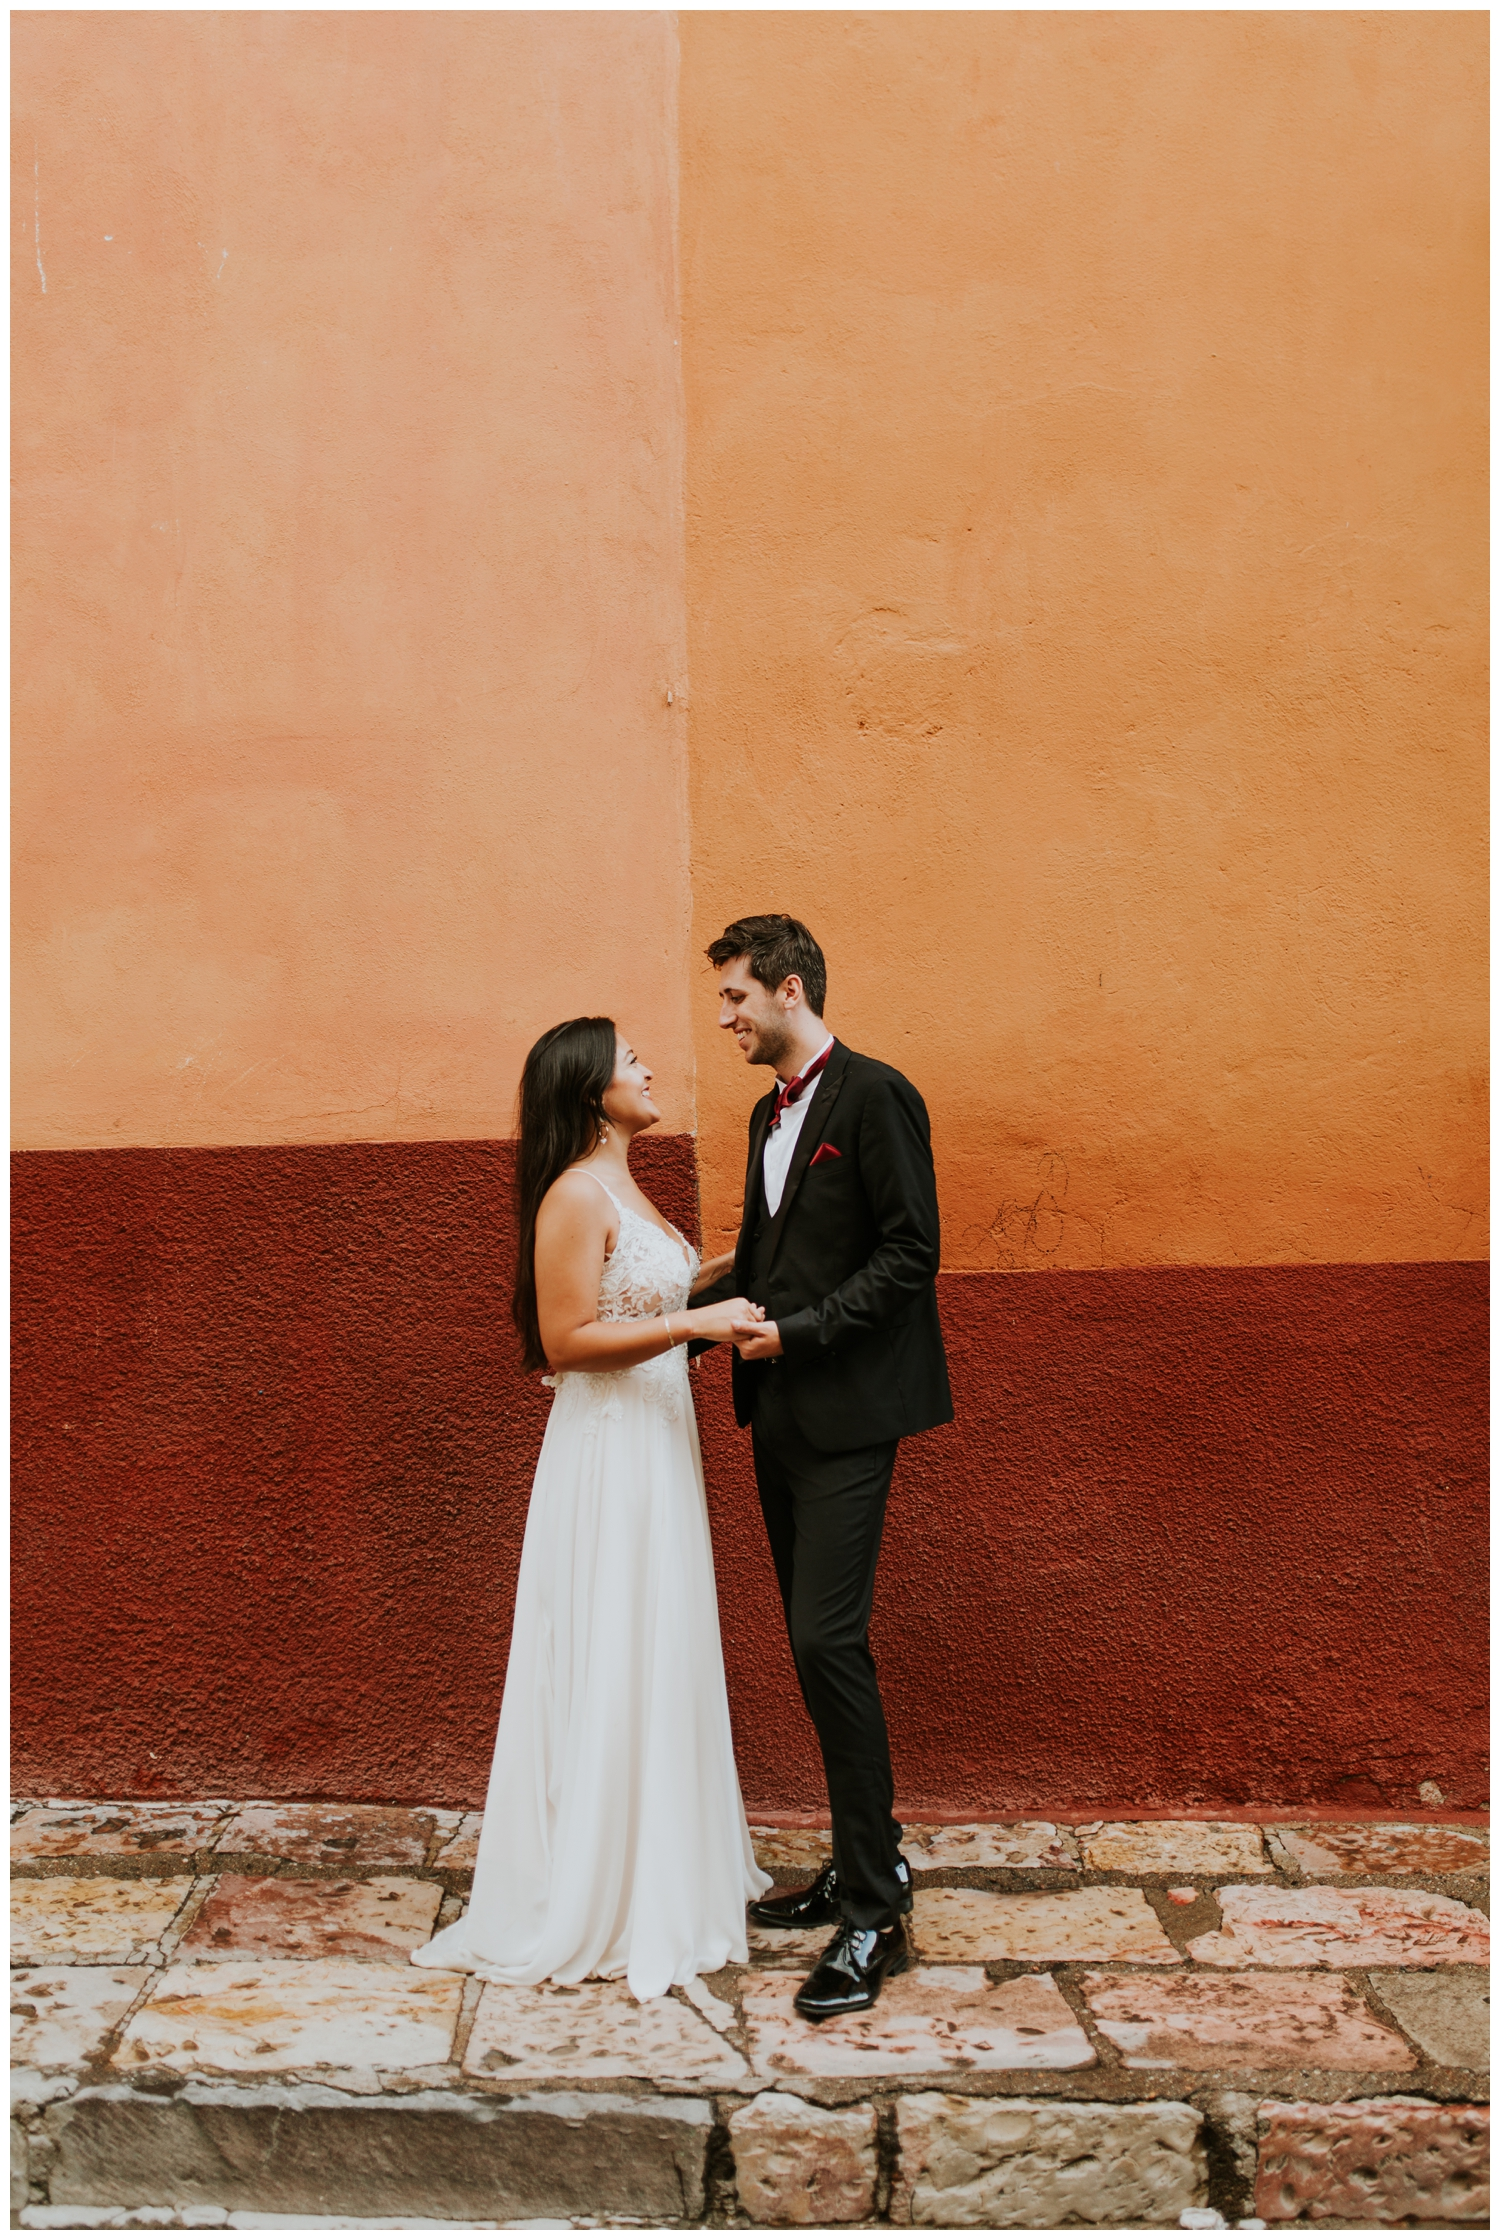 Shane+Sofia, San Miguel de Allende Wedding, Mexico Wedding, Contista Productions Wedding Photography_0213.jpg